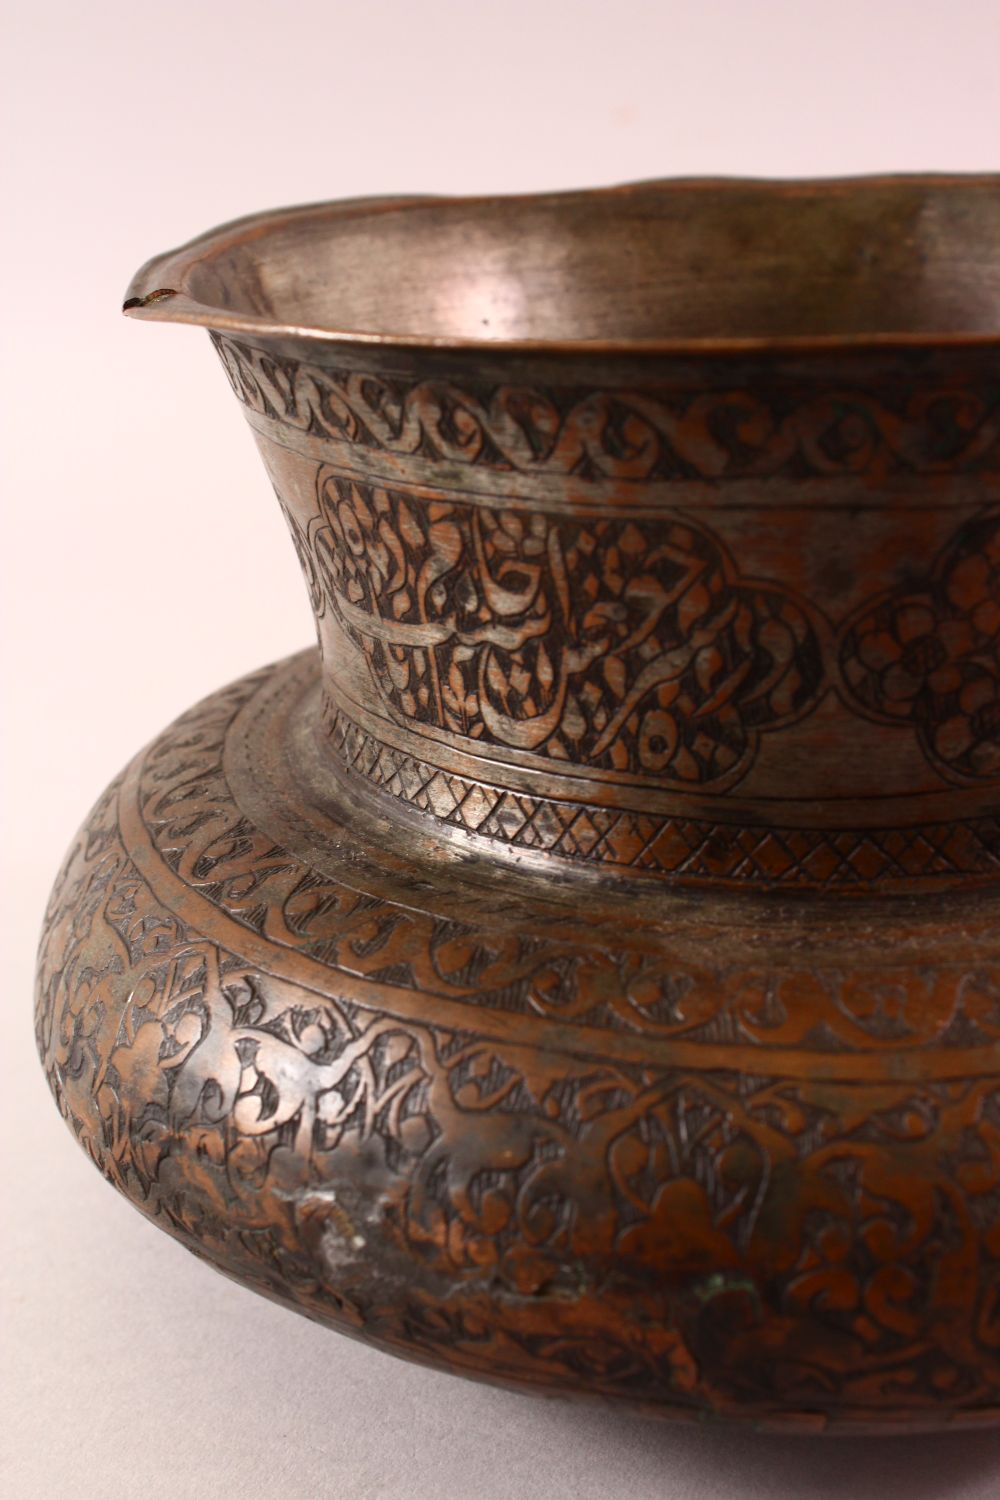 A 17TH CENTURY PERSIAN CALLIGRAPHIC BOWL -SIGNED - the body with carved floral motif decoration, the - Image 5 of 7